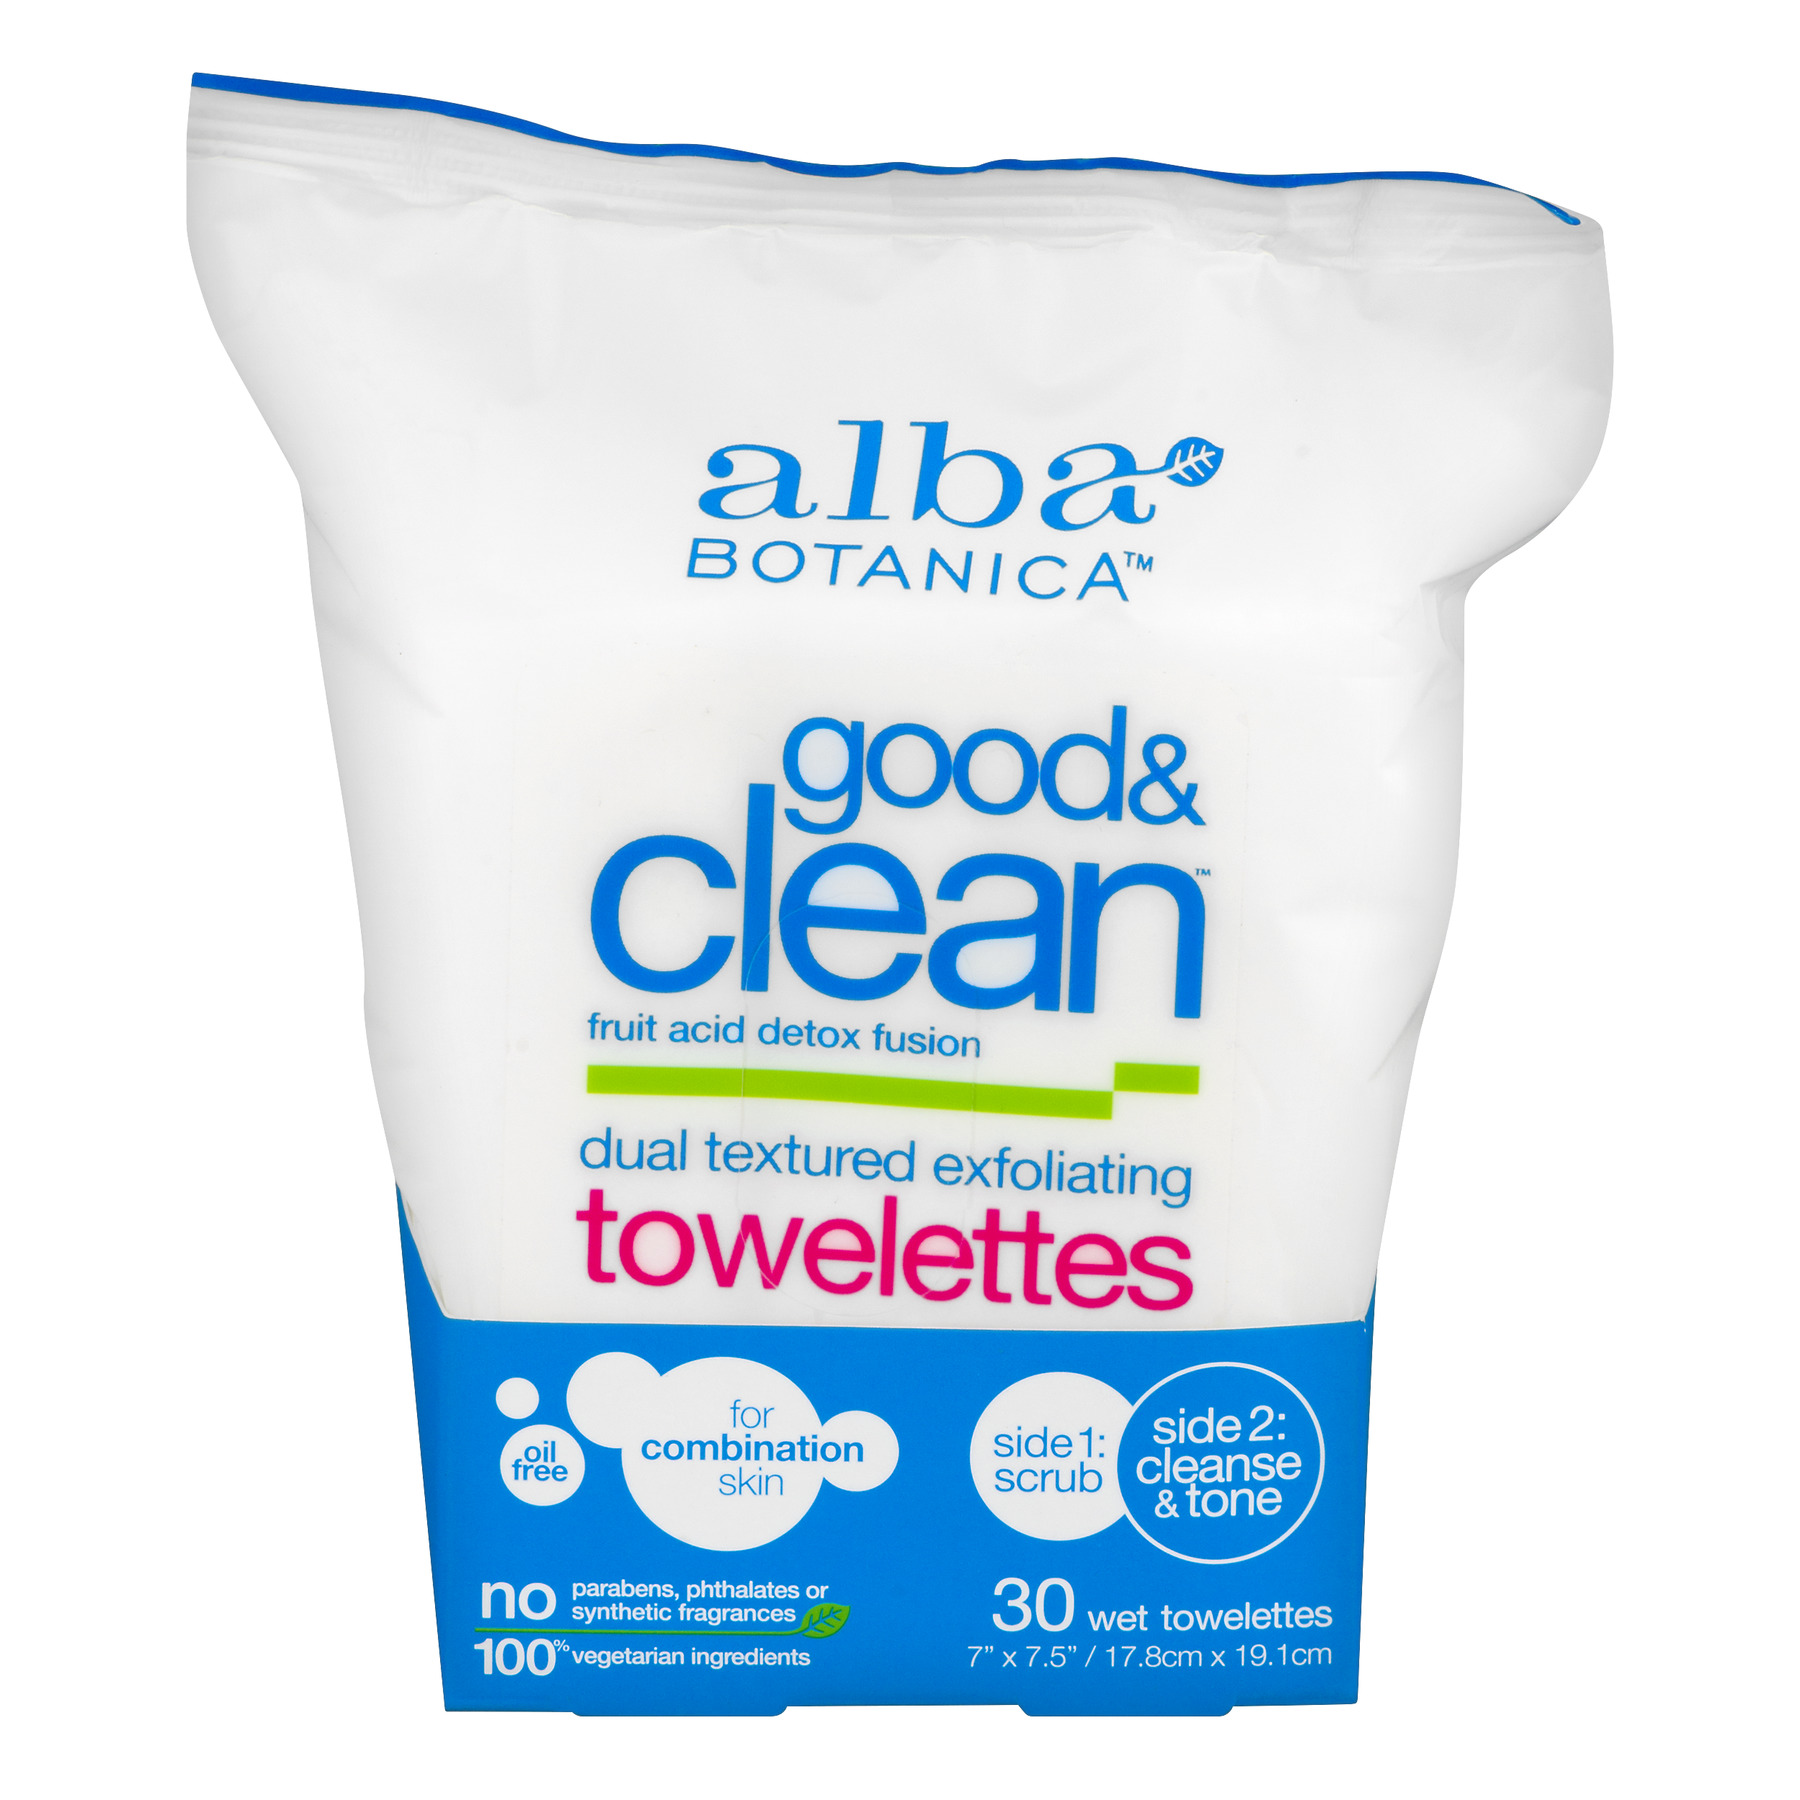 Alba Botanica Good & Clean Towelettes - 30 CT30.0 CT